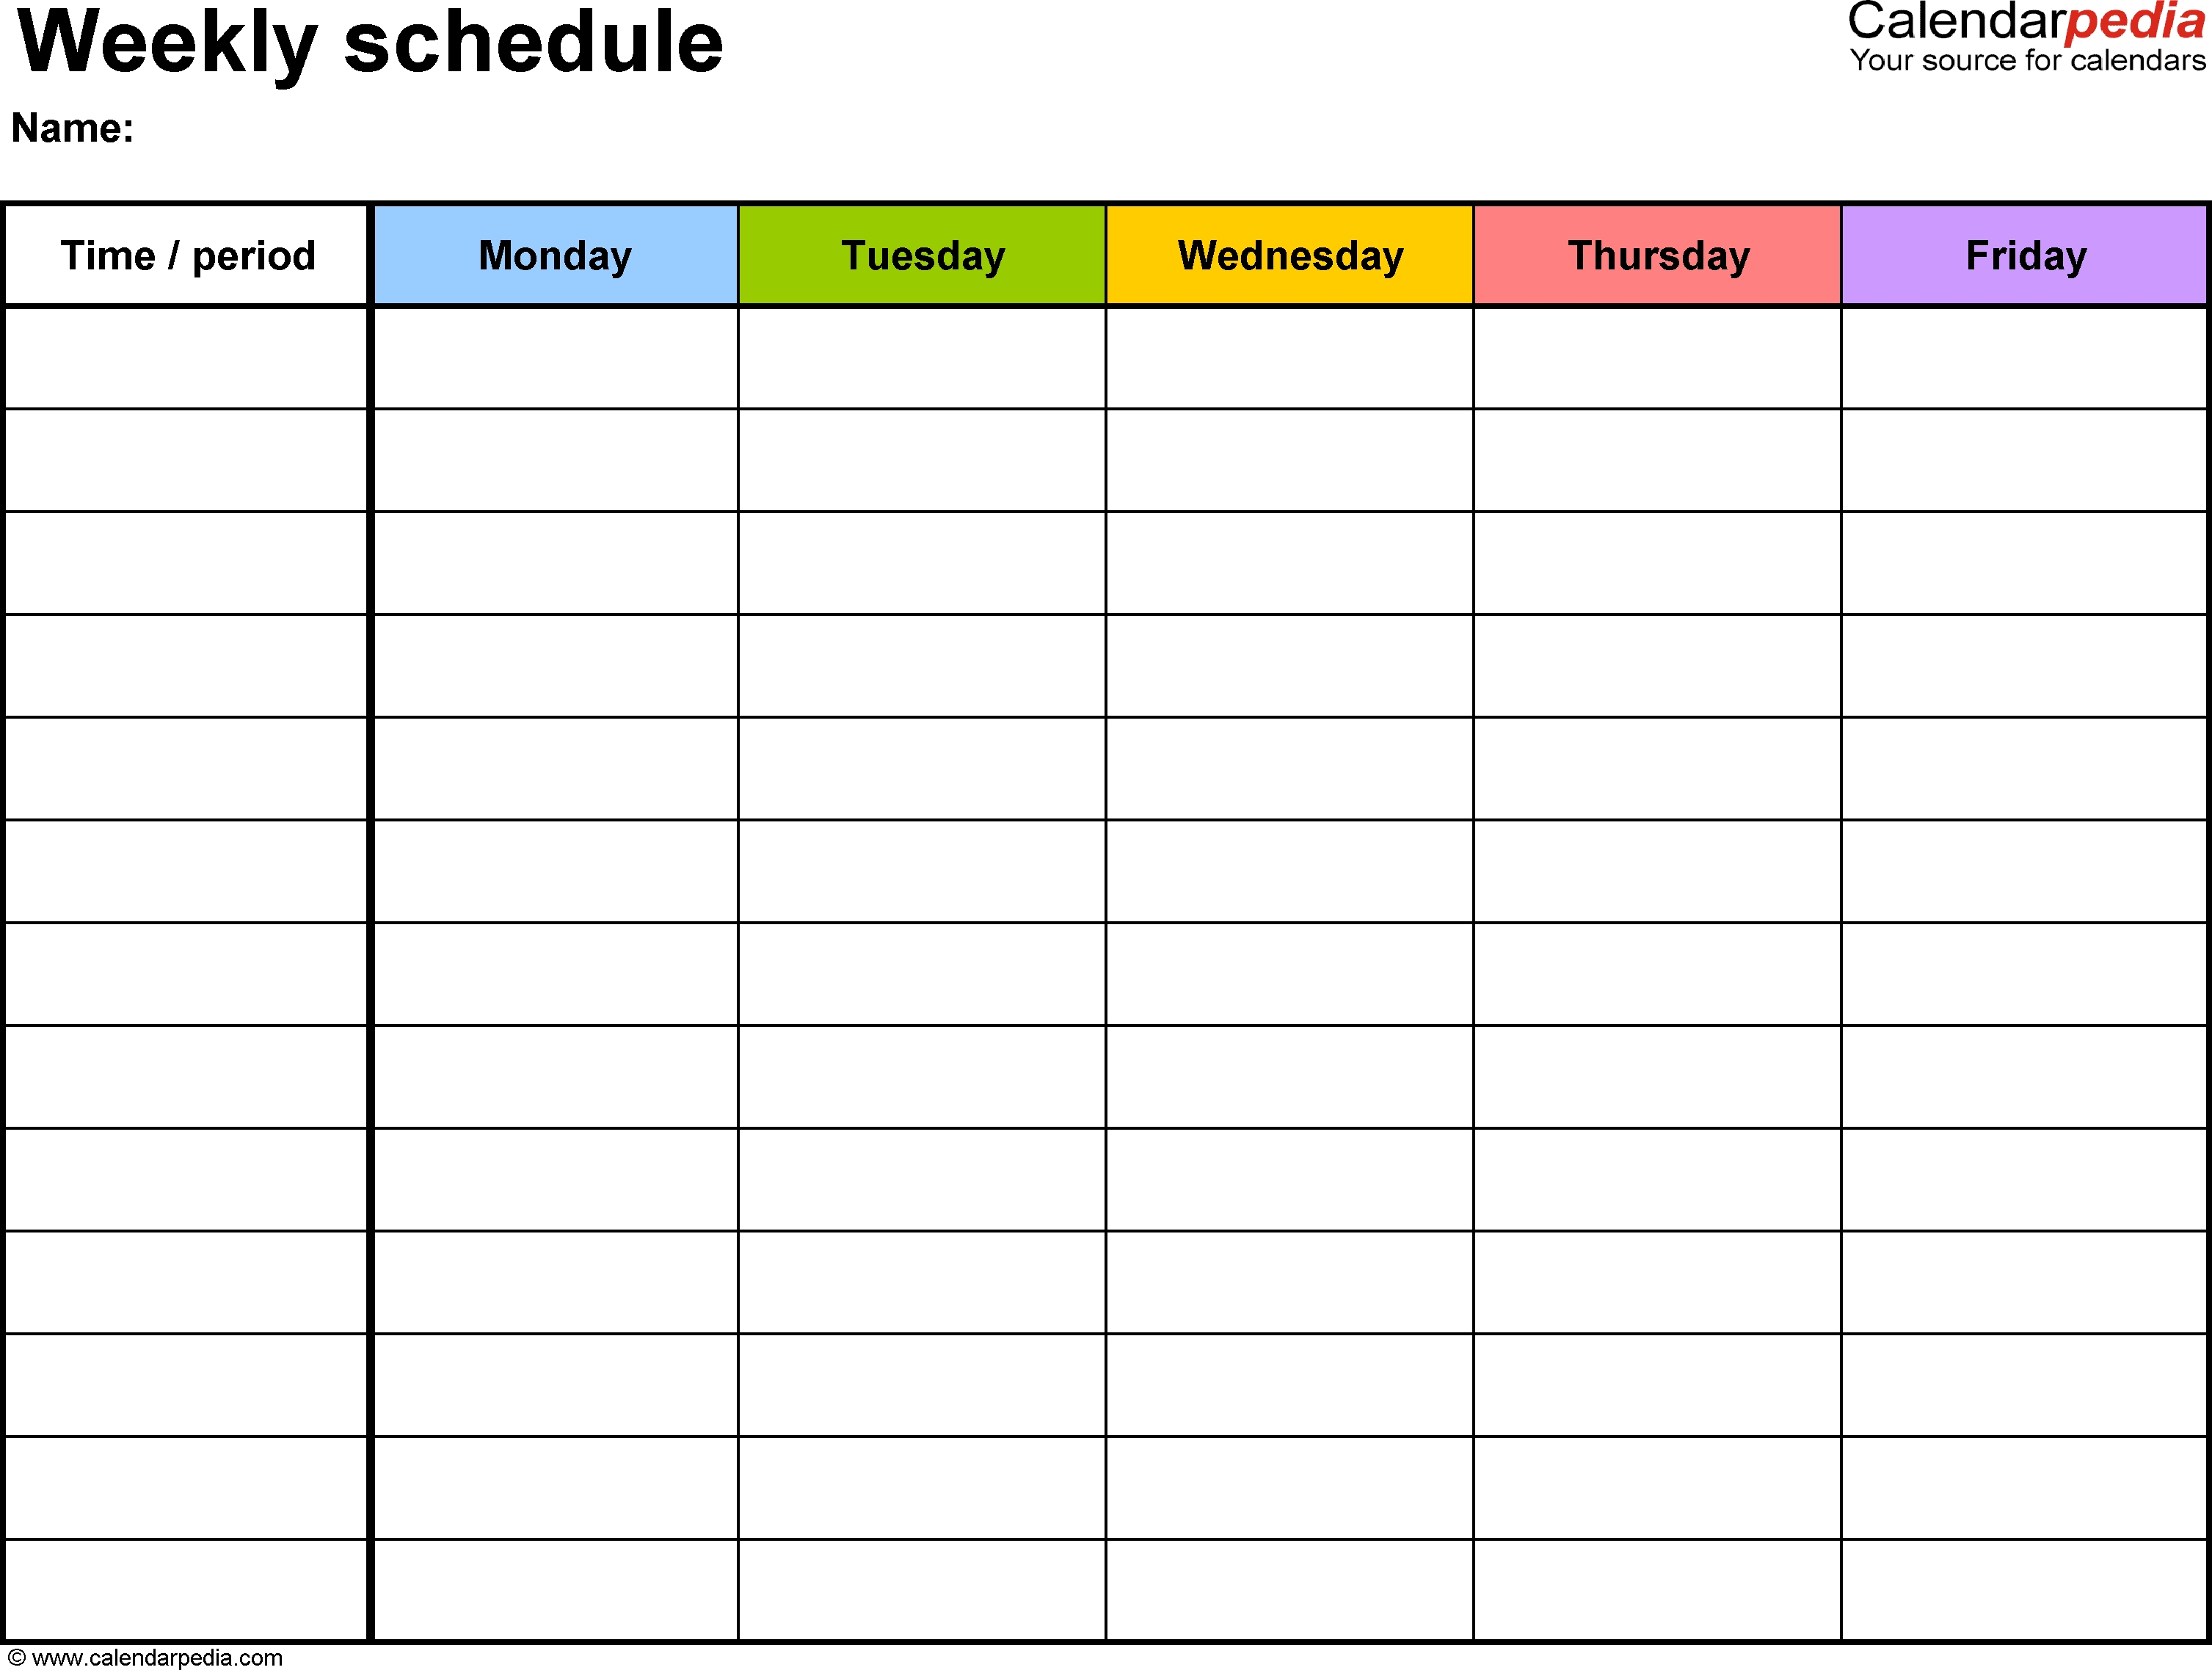 Free Weekly Schedule Templates For Word - 18 Templates within Monday Though Friday Timed Schedule